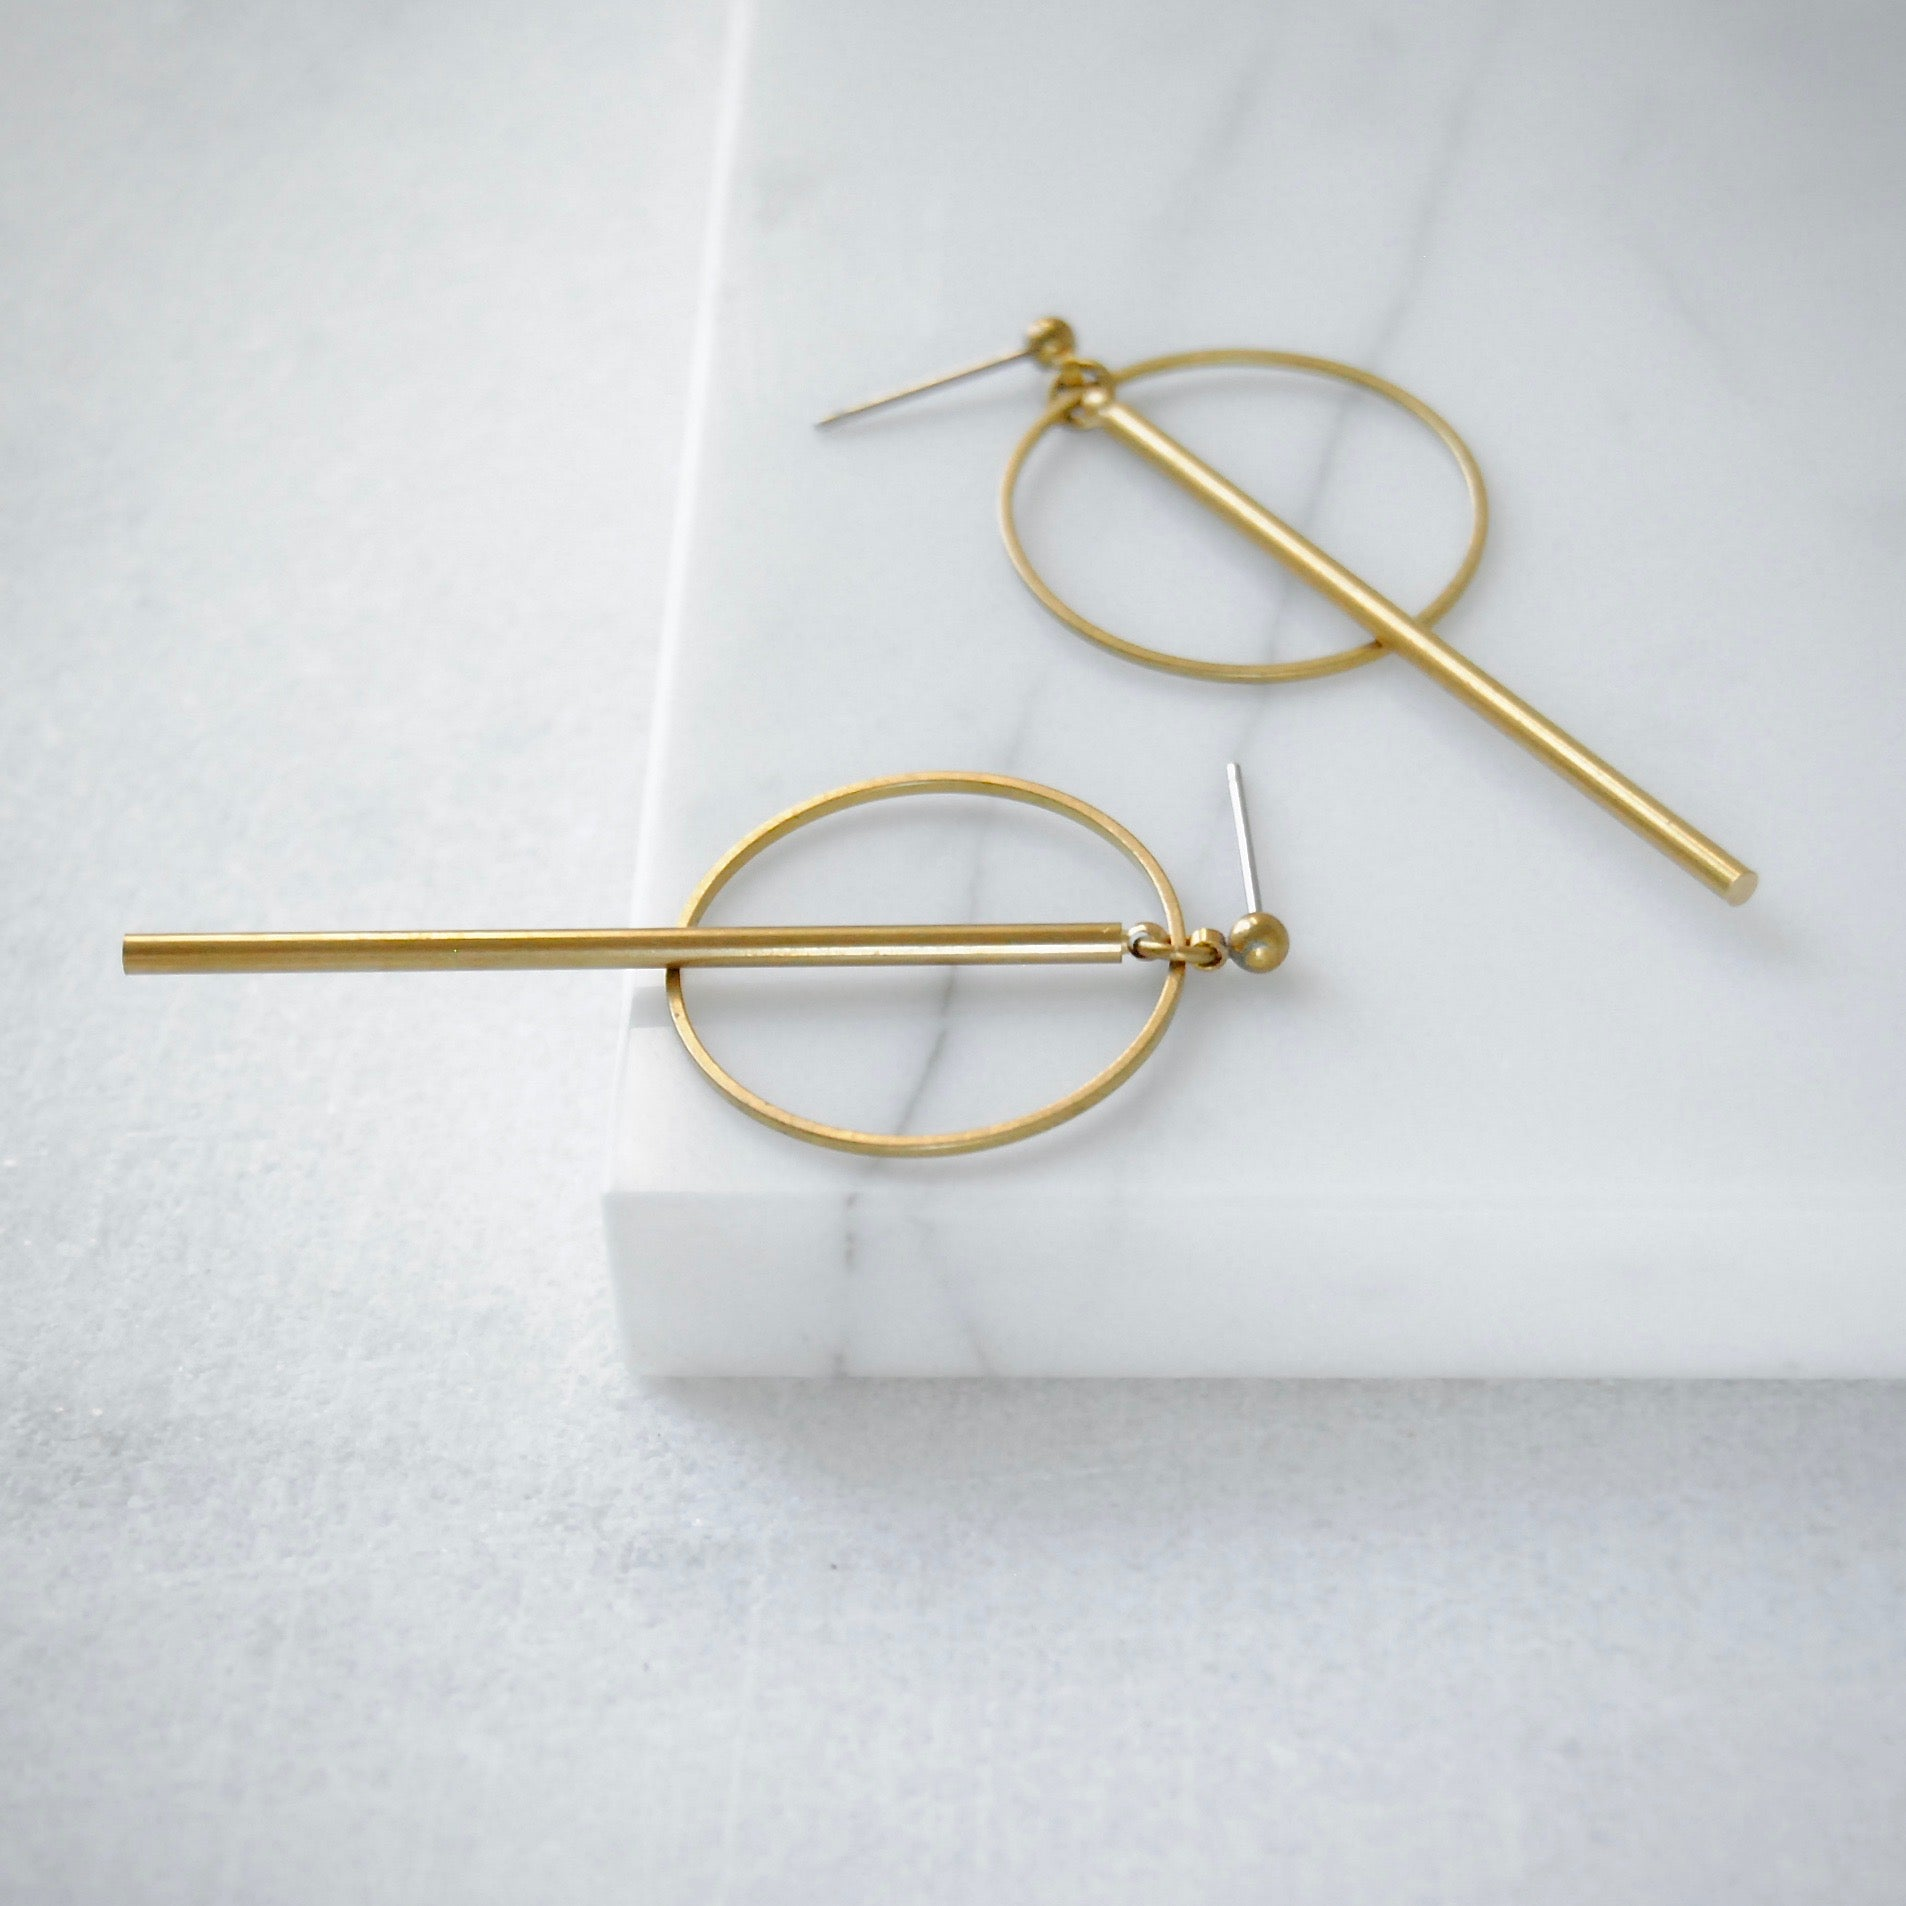 CIRCLE AND BAR EARRINGS